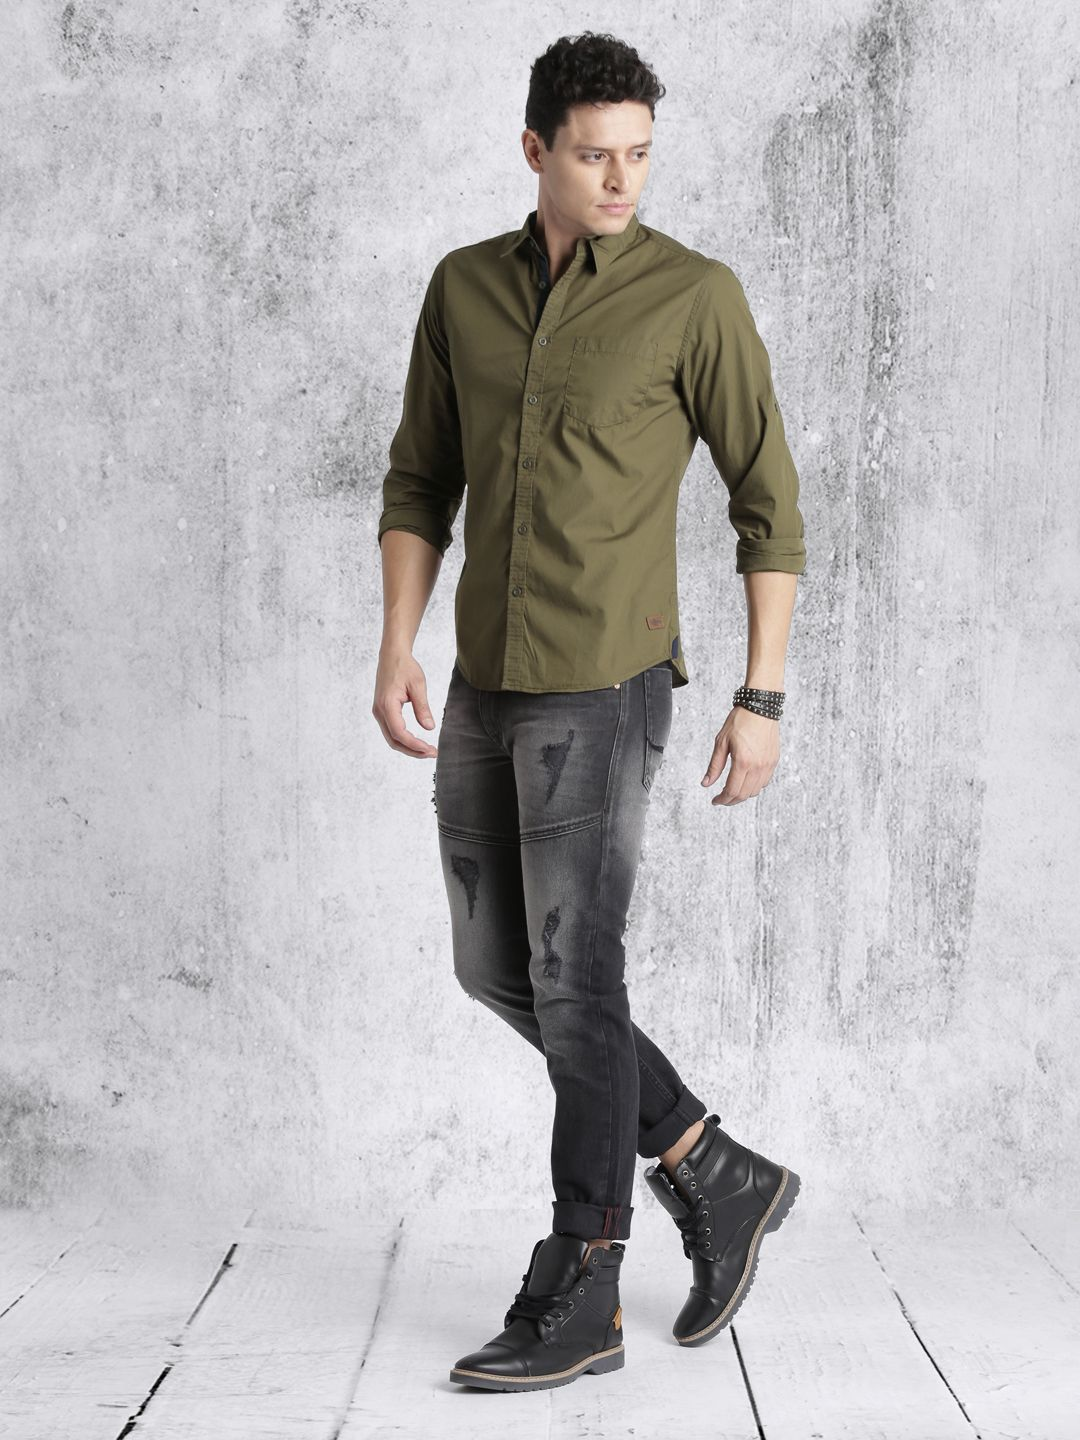 567eb3327b6 Roadster Men #Olive Green Regular Fit Solid Casual Shirt | Stylish ...